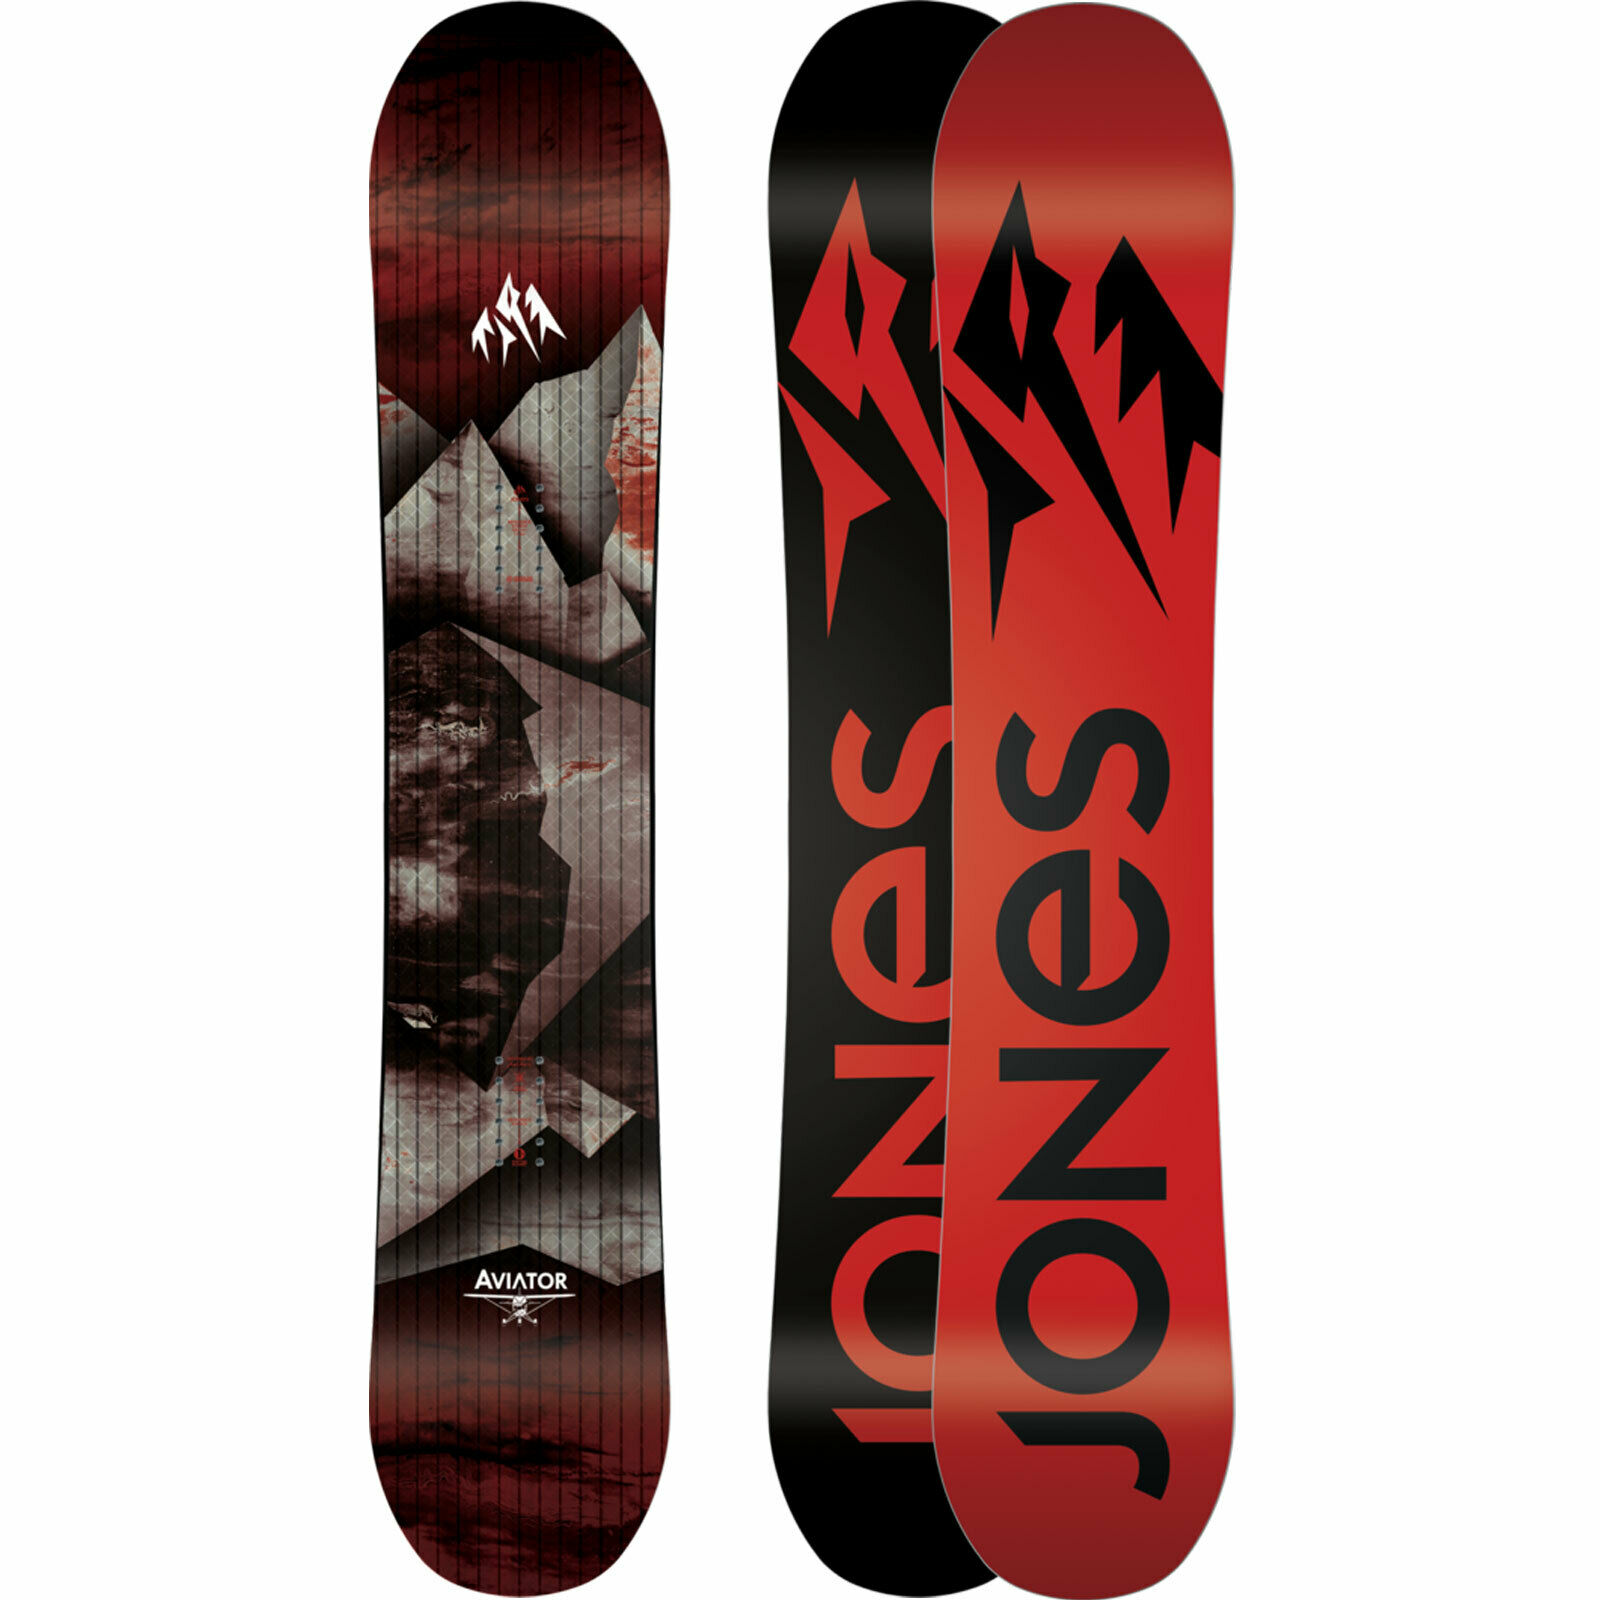 Jones Aviator Men's Snowboard all Mountain Freestyle Freeride 2019 New   retail stores